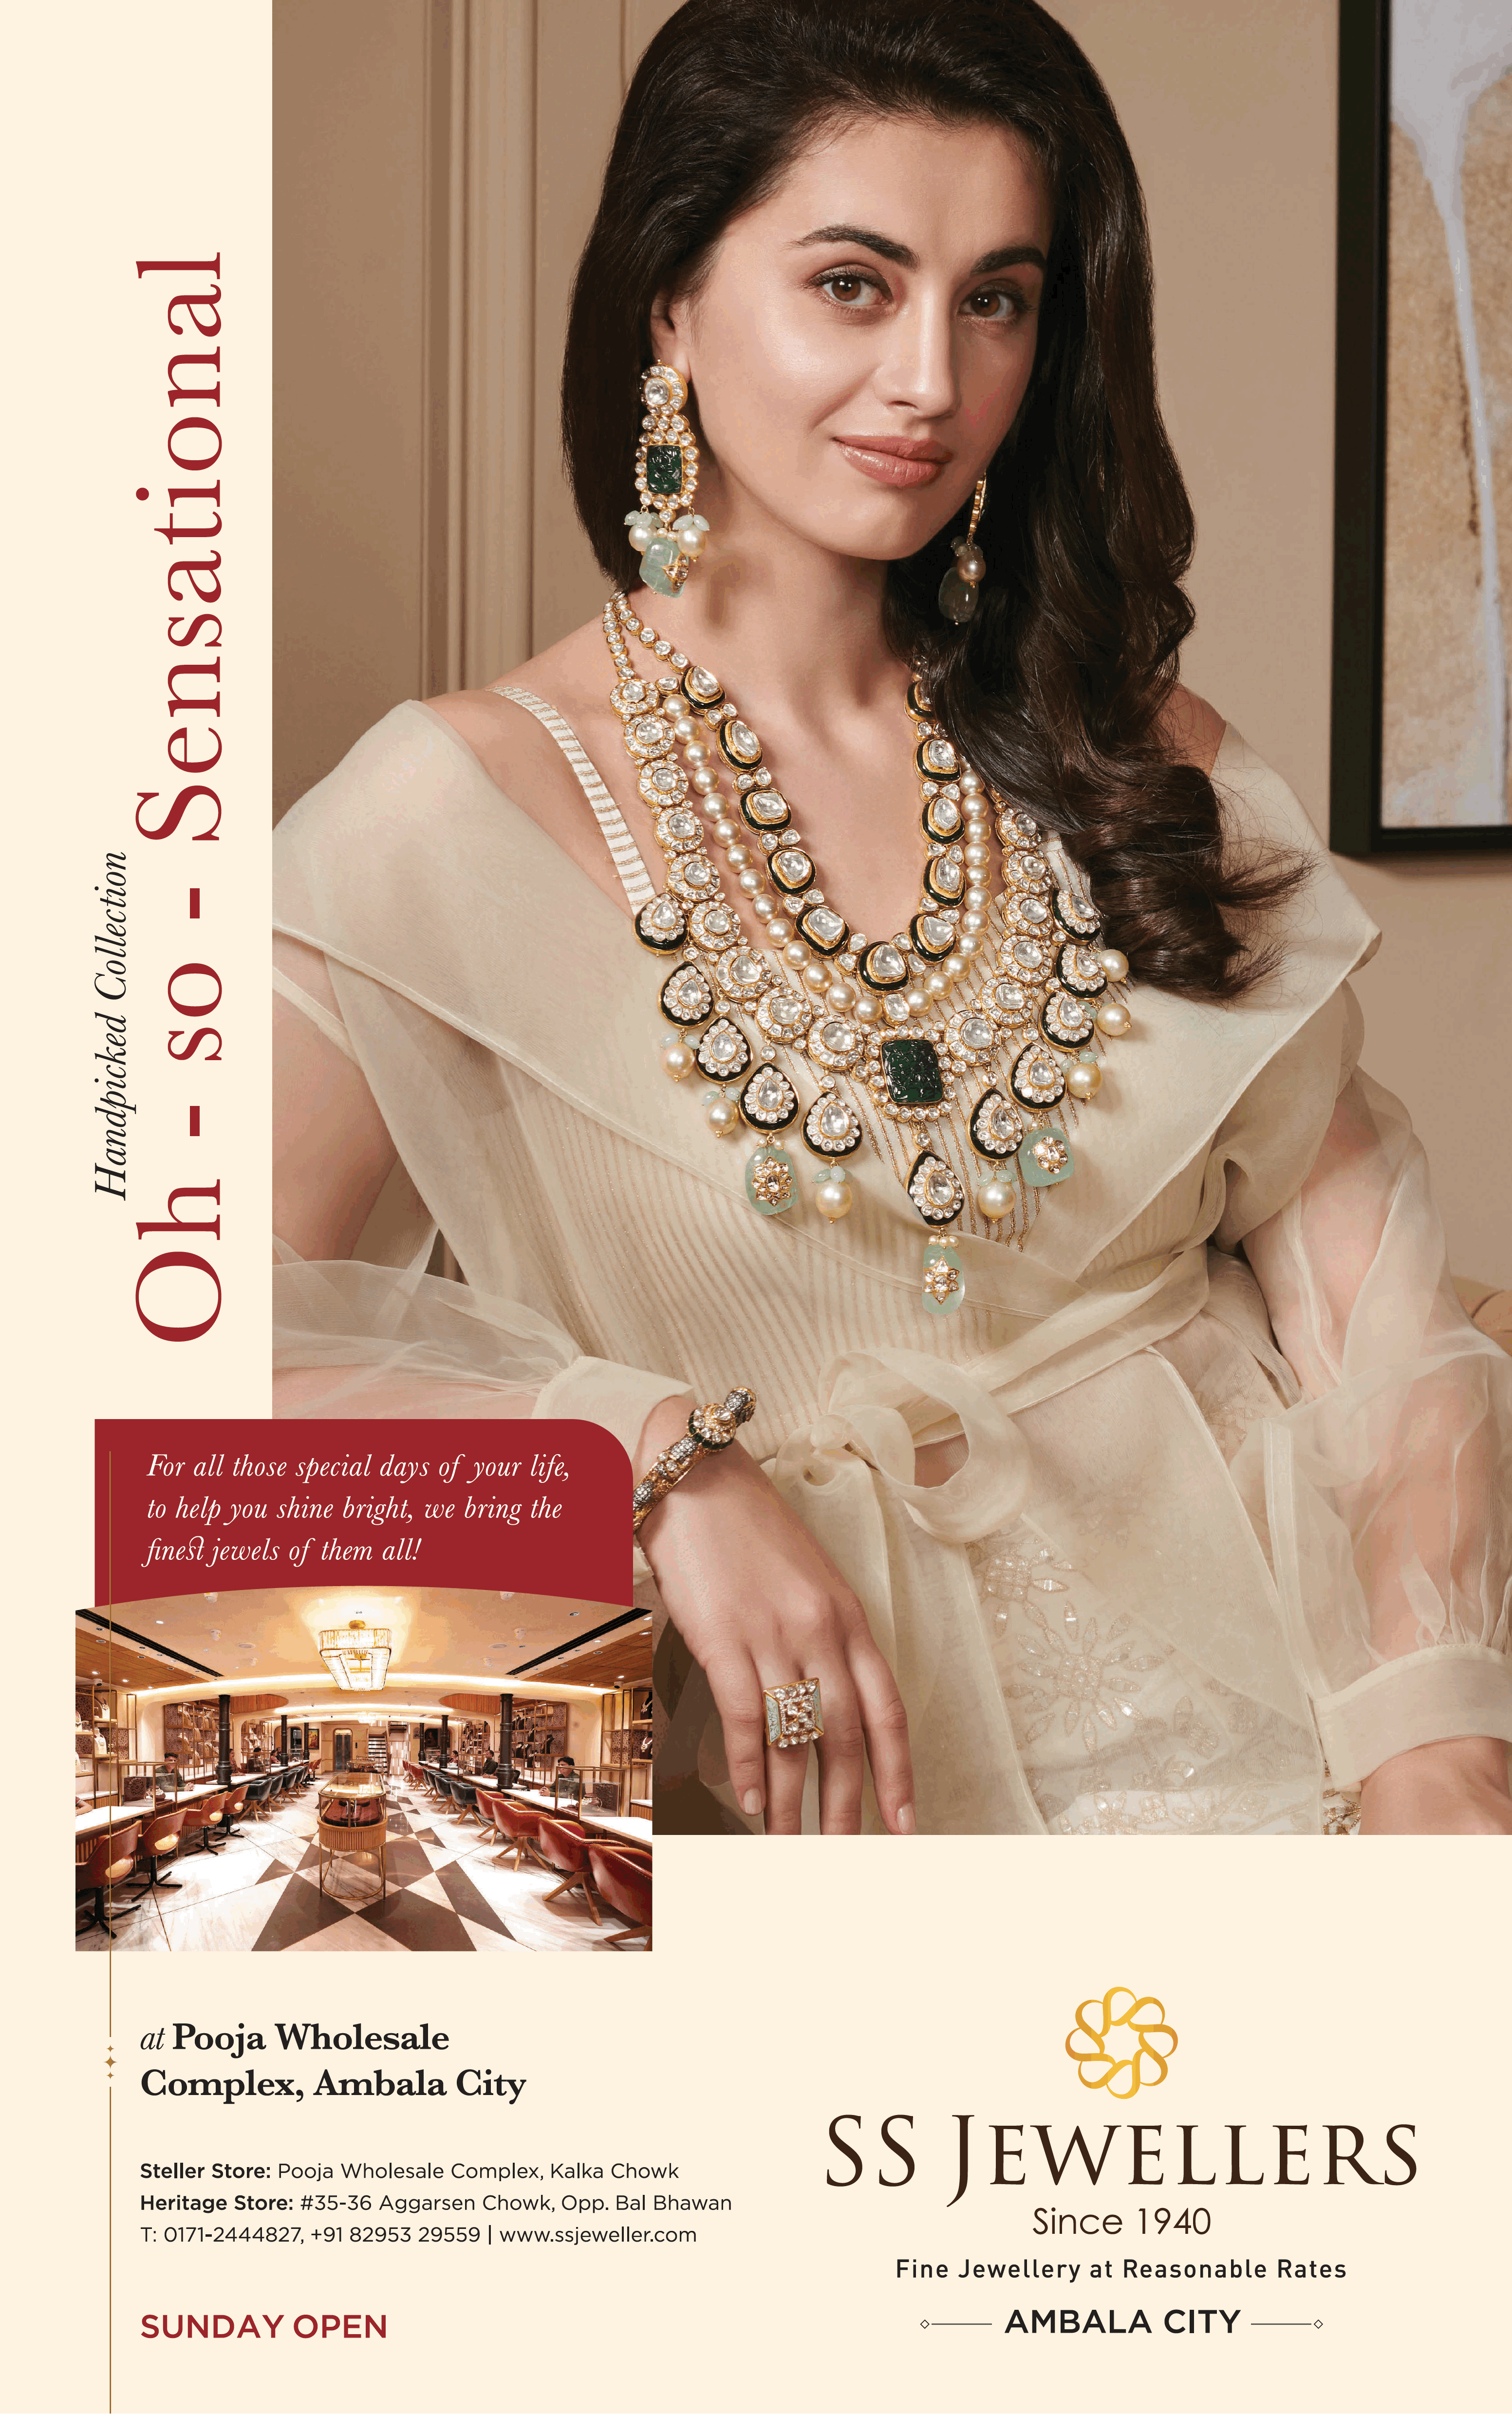 s-s-jewellers-at-pooja-wholesale-complex-ambala-city-finest-jewellery-at-reasonable-rates-ad-toi-chandigarh-11-7-2021